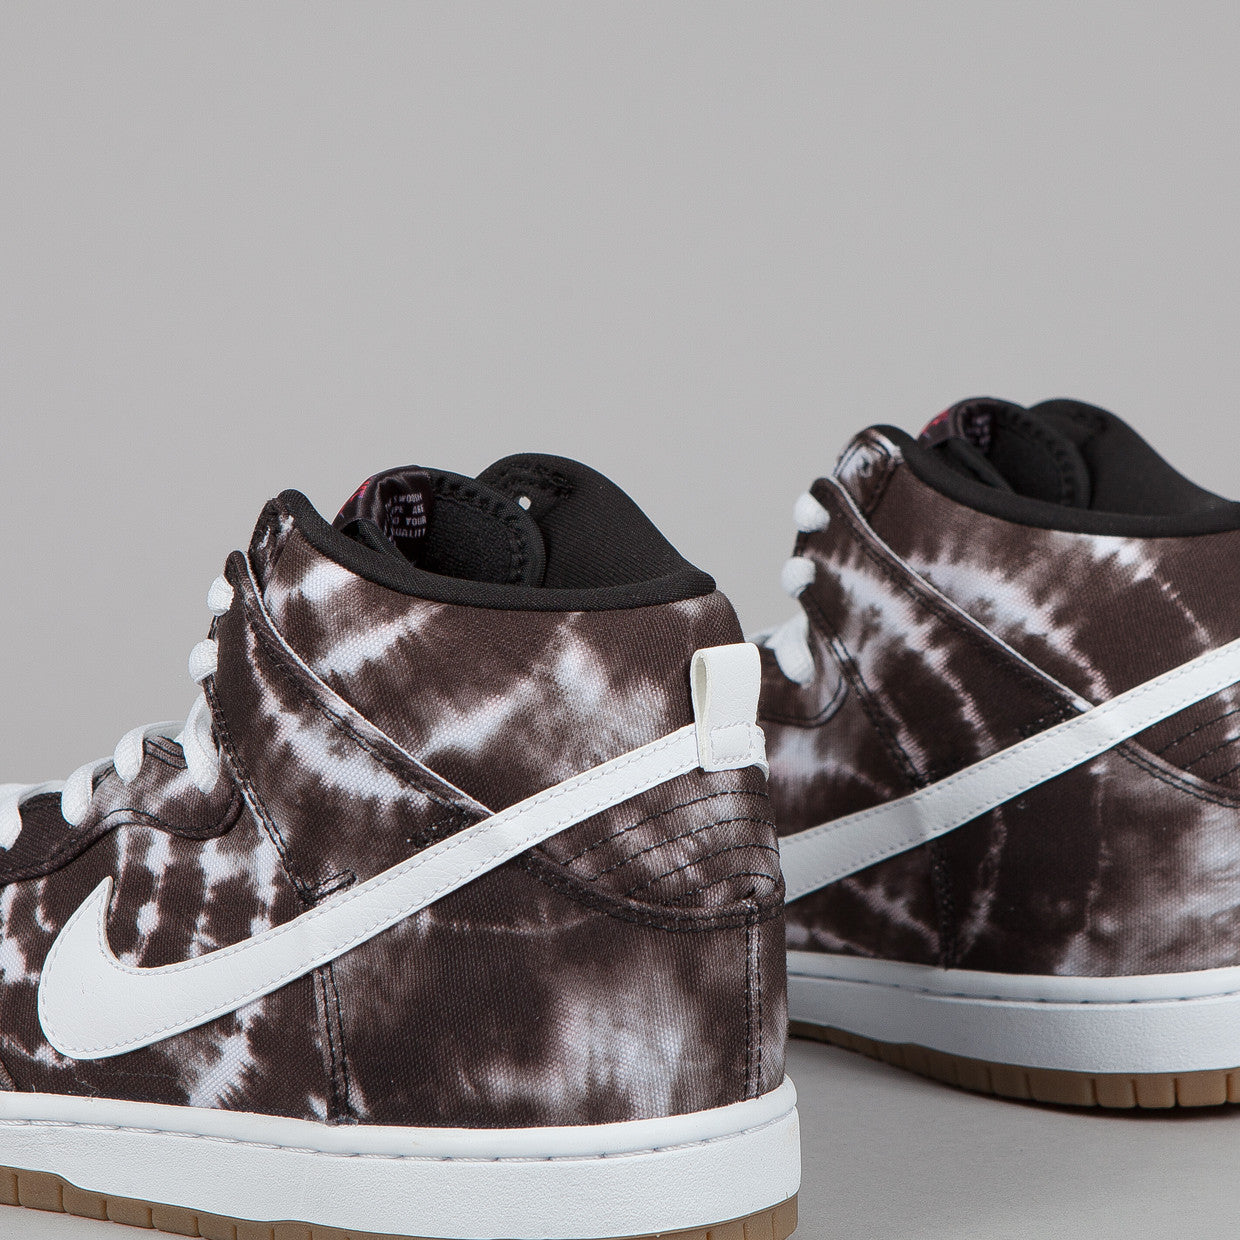 Nike SB Dunk High PR Black / White - White (tie dye)